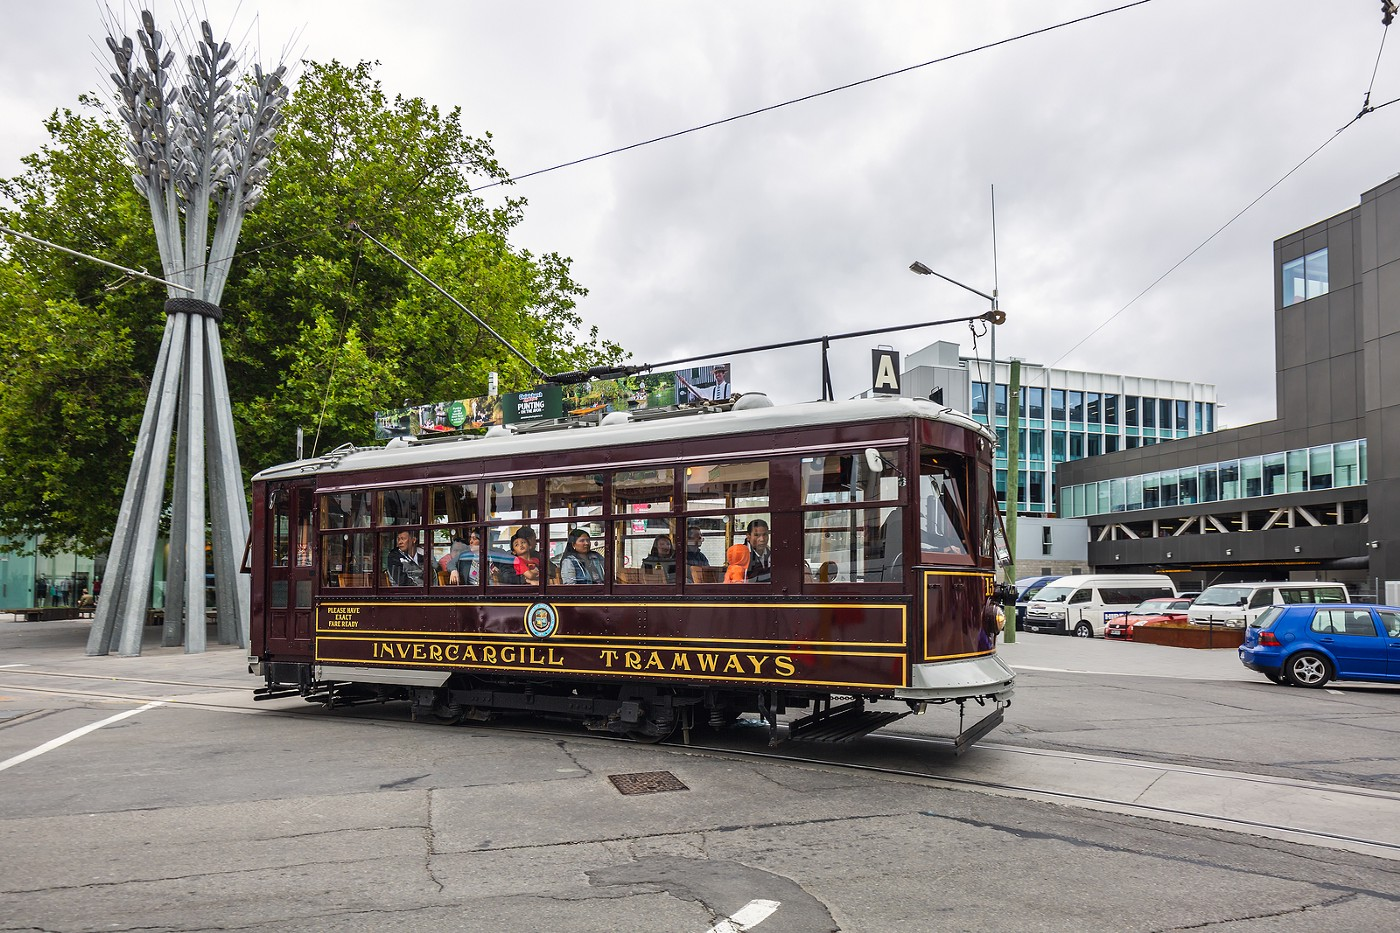 Old Invercargill Tramway tram at intersection. Coloured brown with yellow trim and modern city buildings in the background.